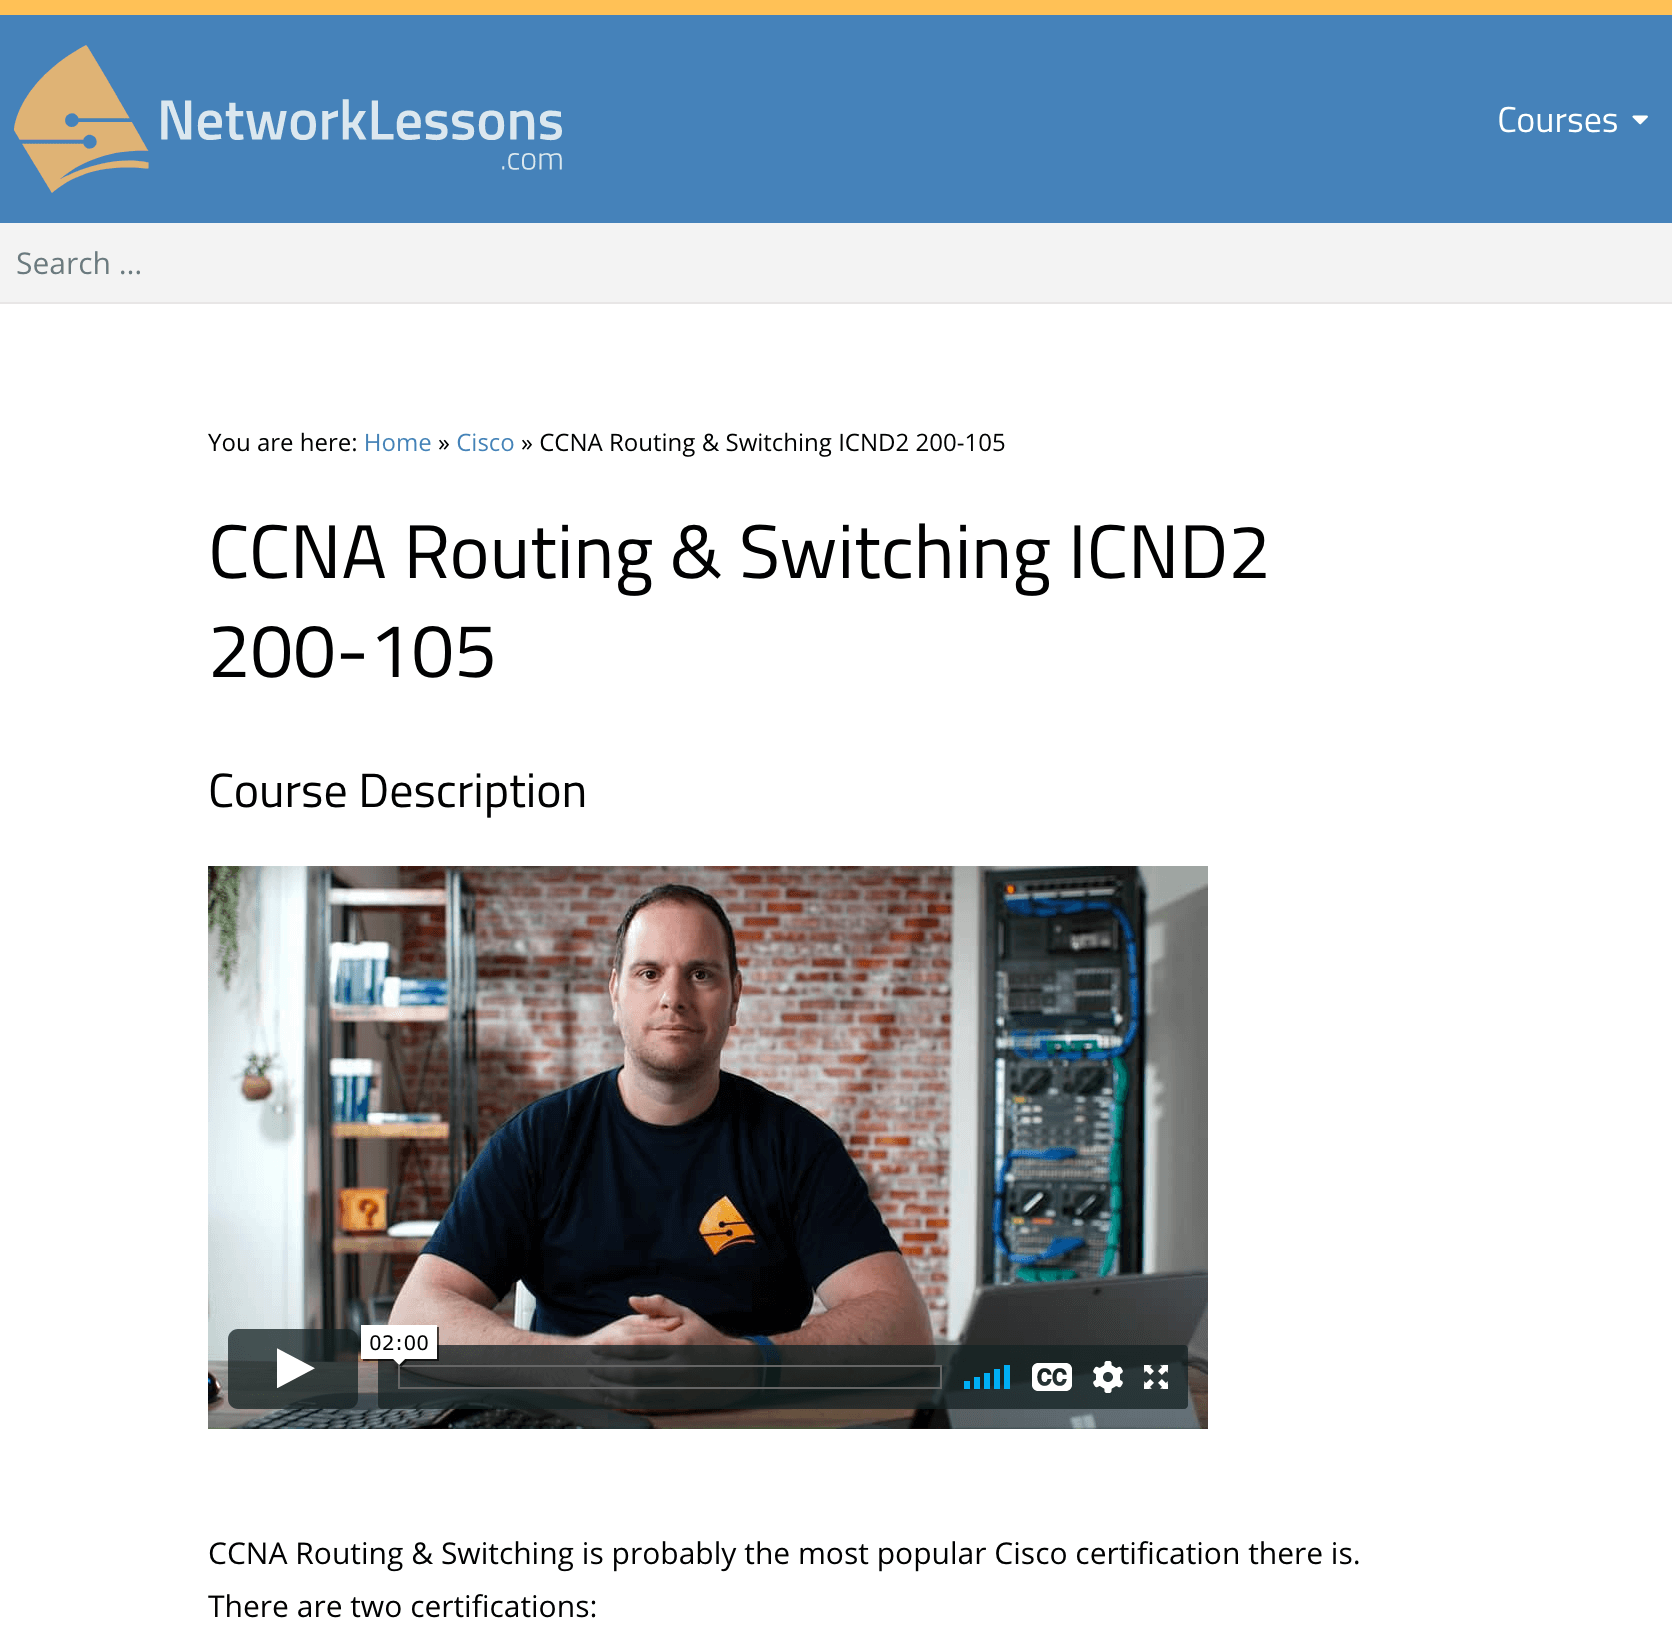 CCNA Routing & Switching ICND2 200-105 from NetworkLessons.com